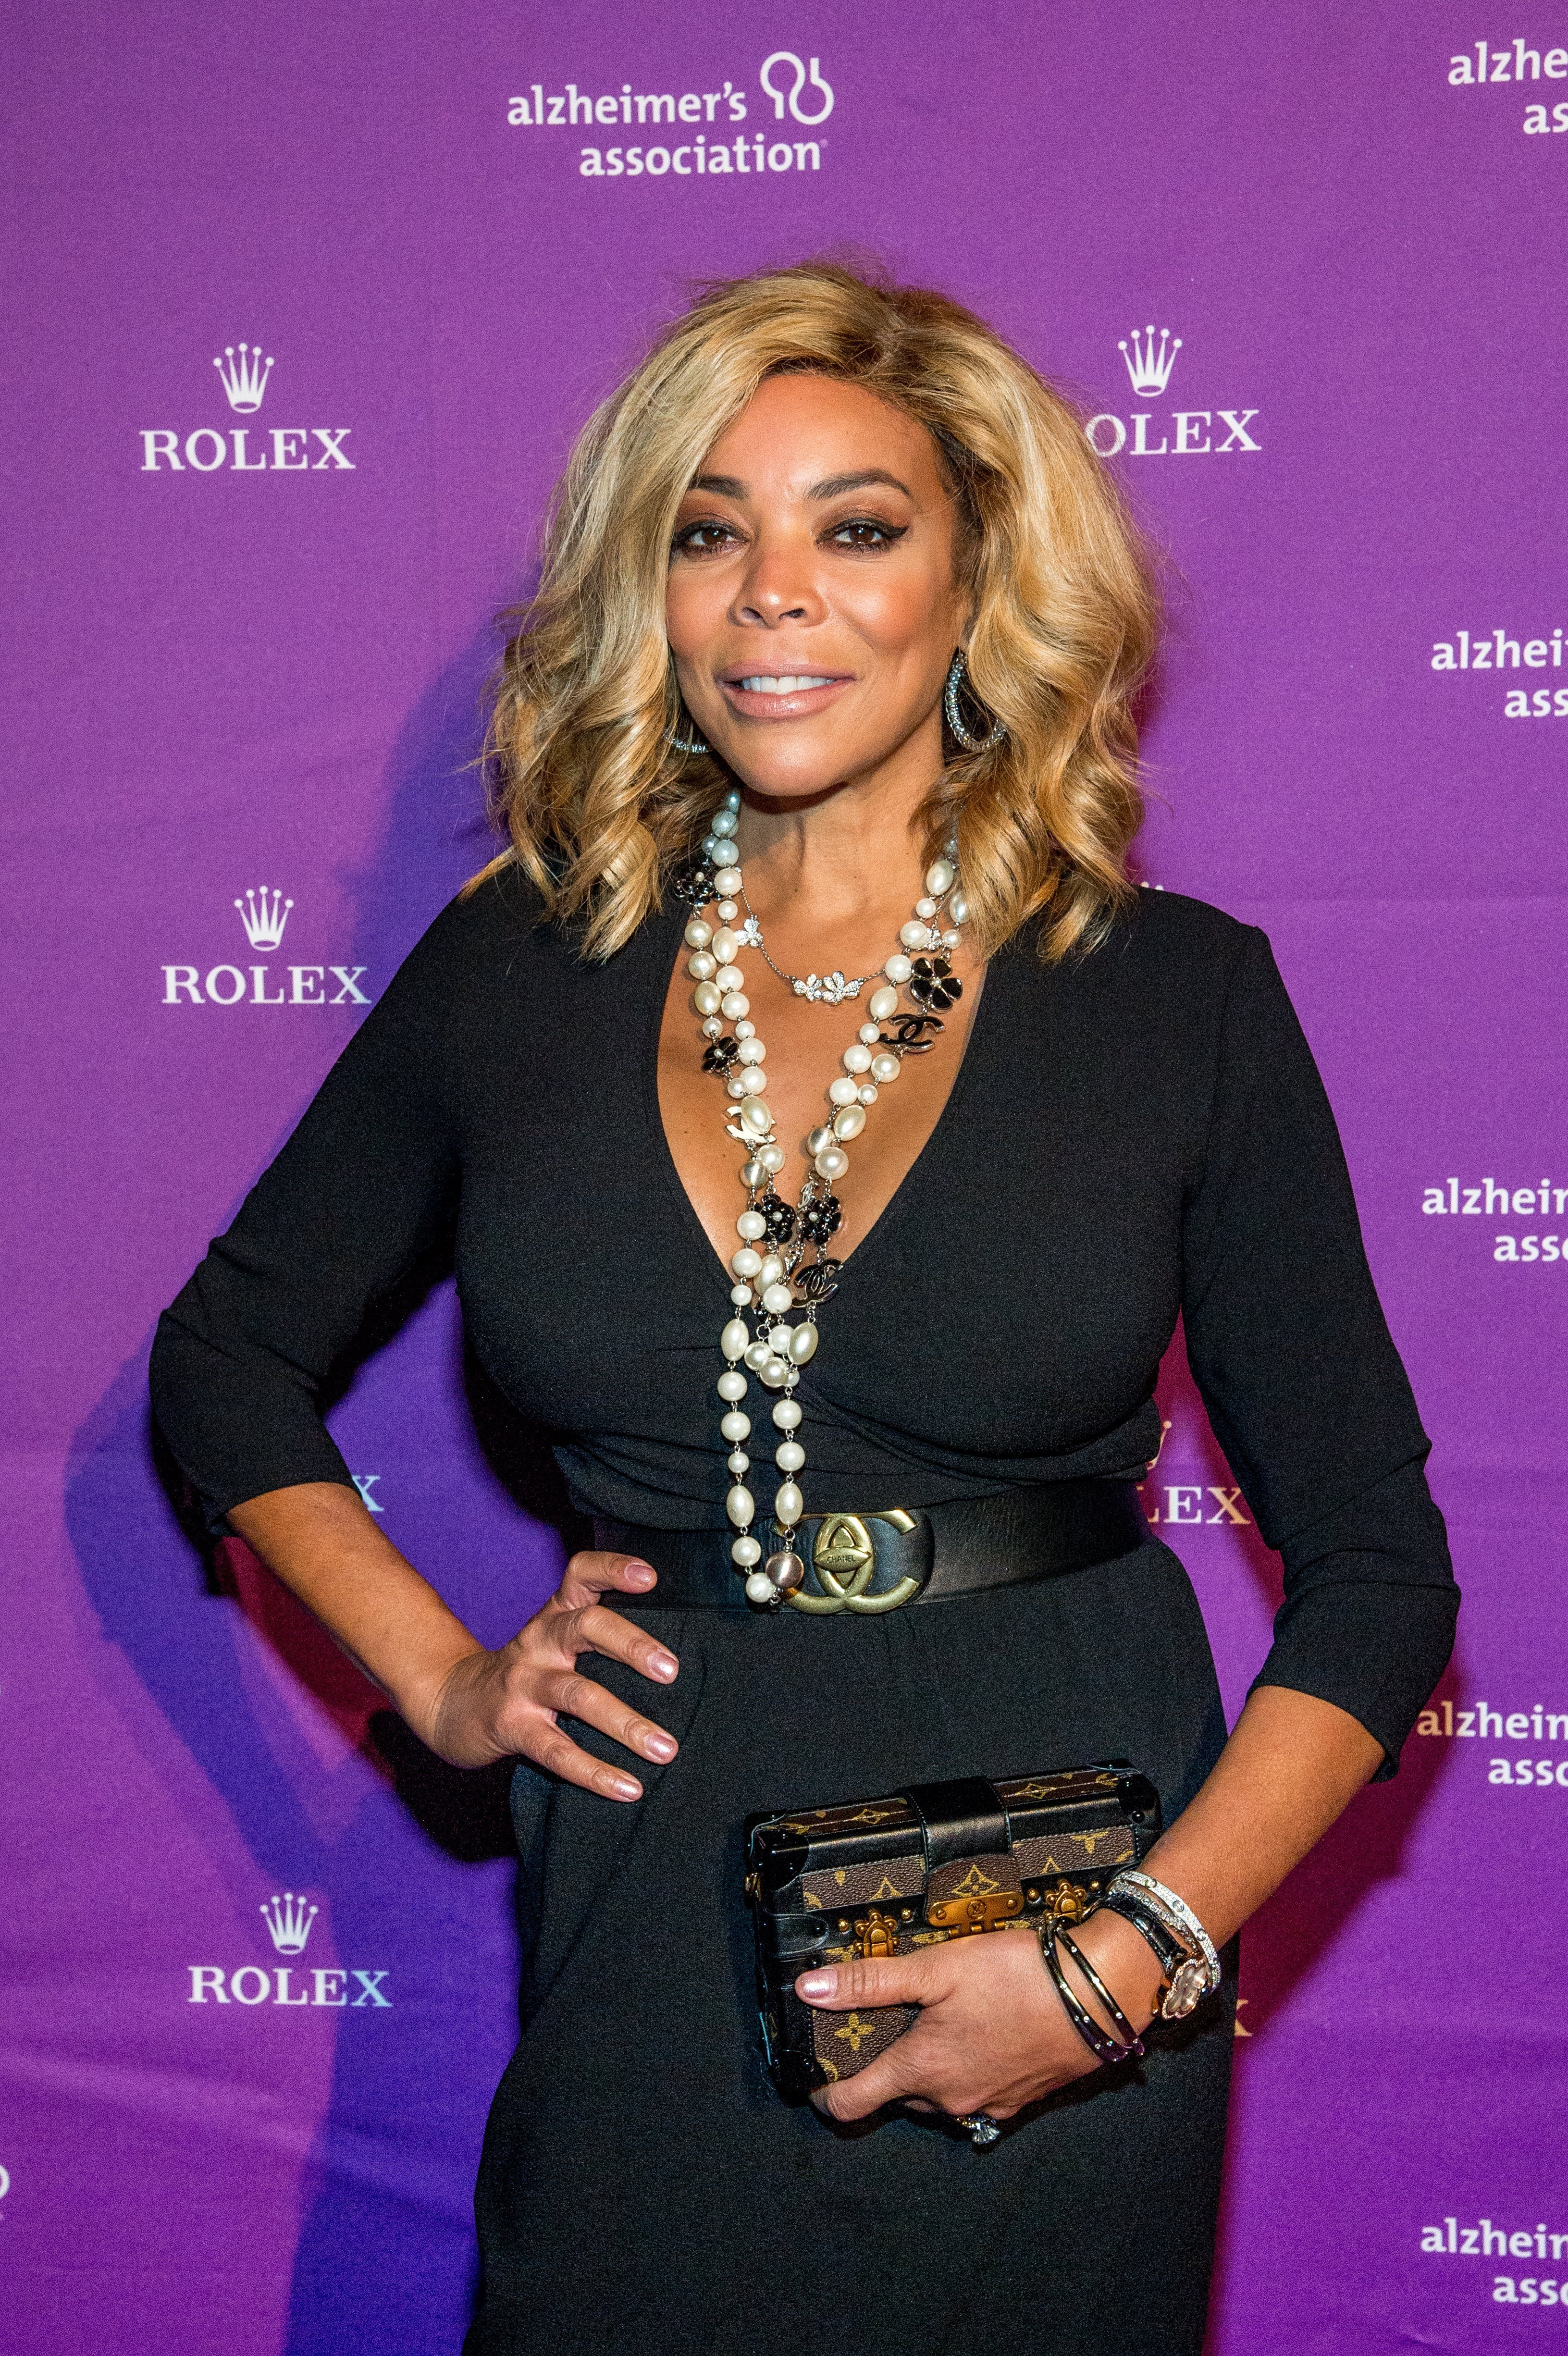 Wendy Williams attending the 33rd Annual Alzheimer's Association Rita Hayworth Gala in October 2016. | Photo: Getty Images